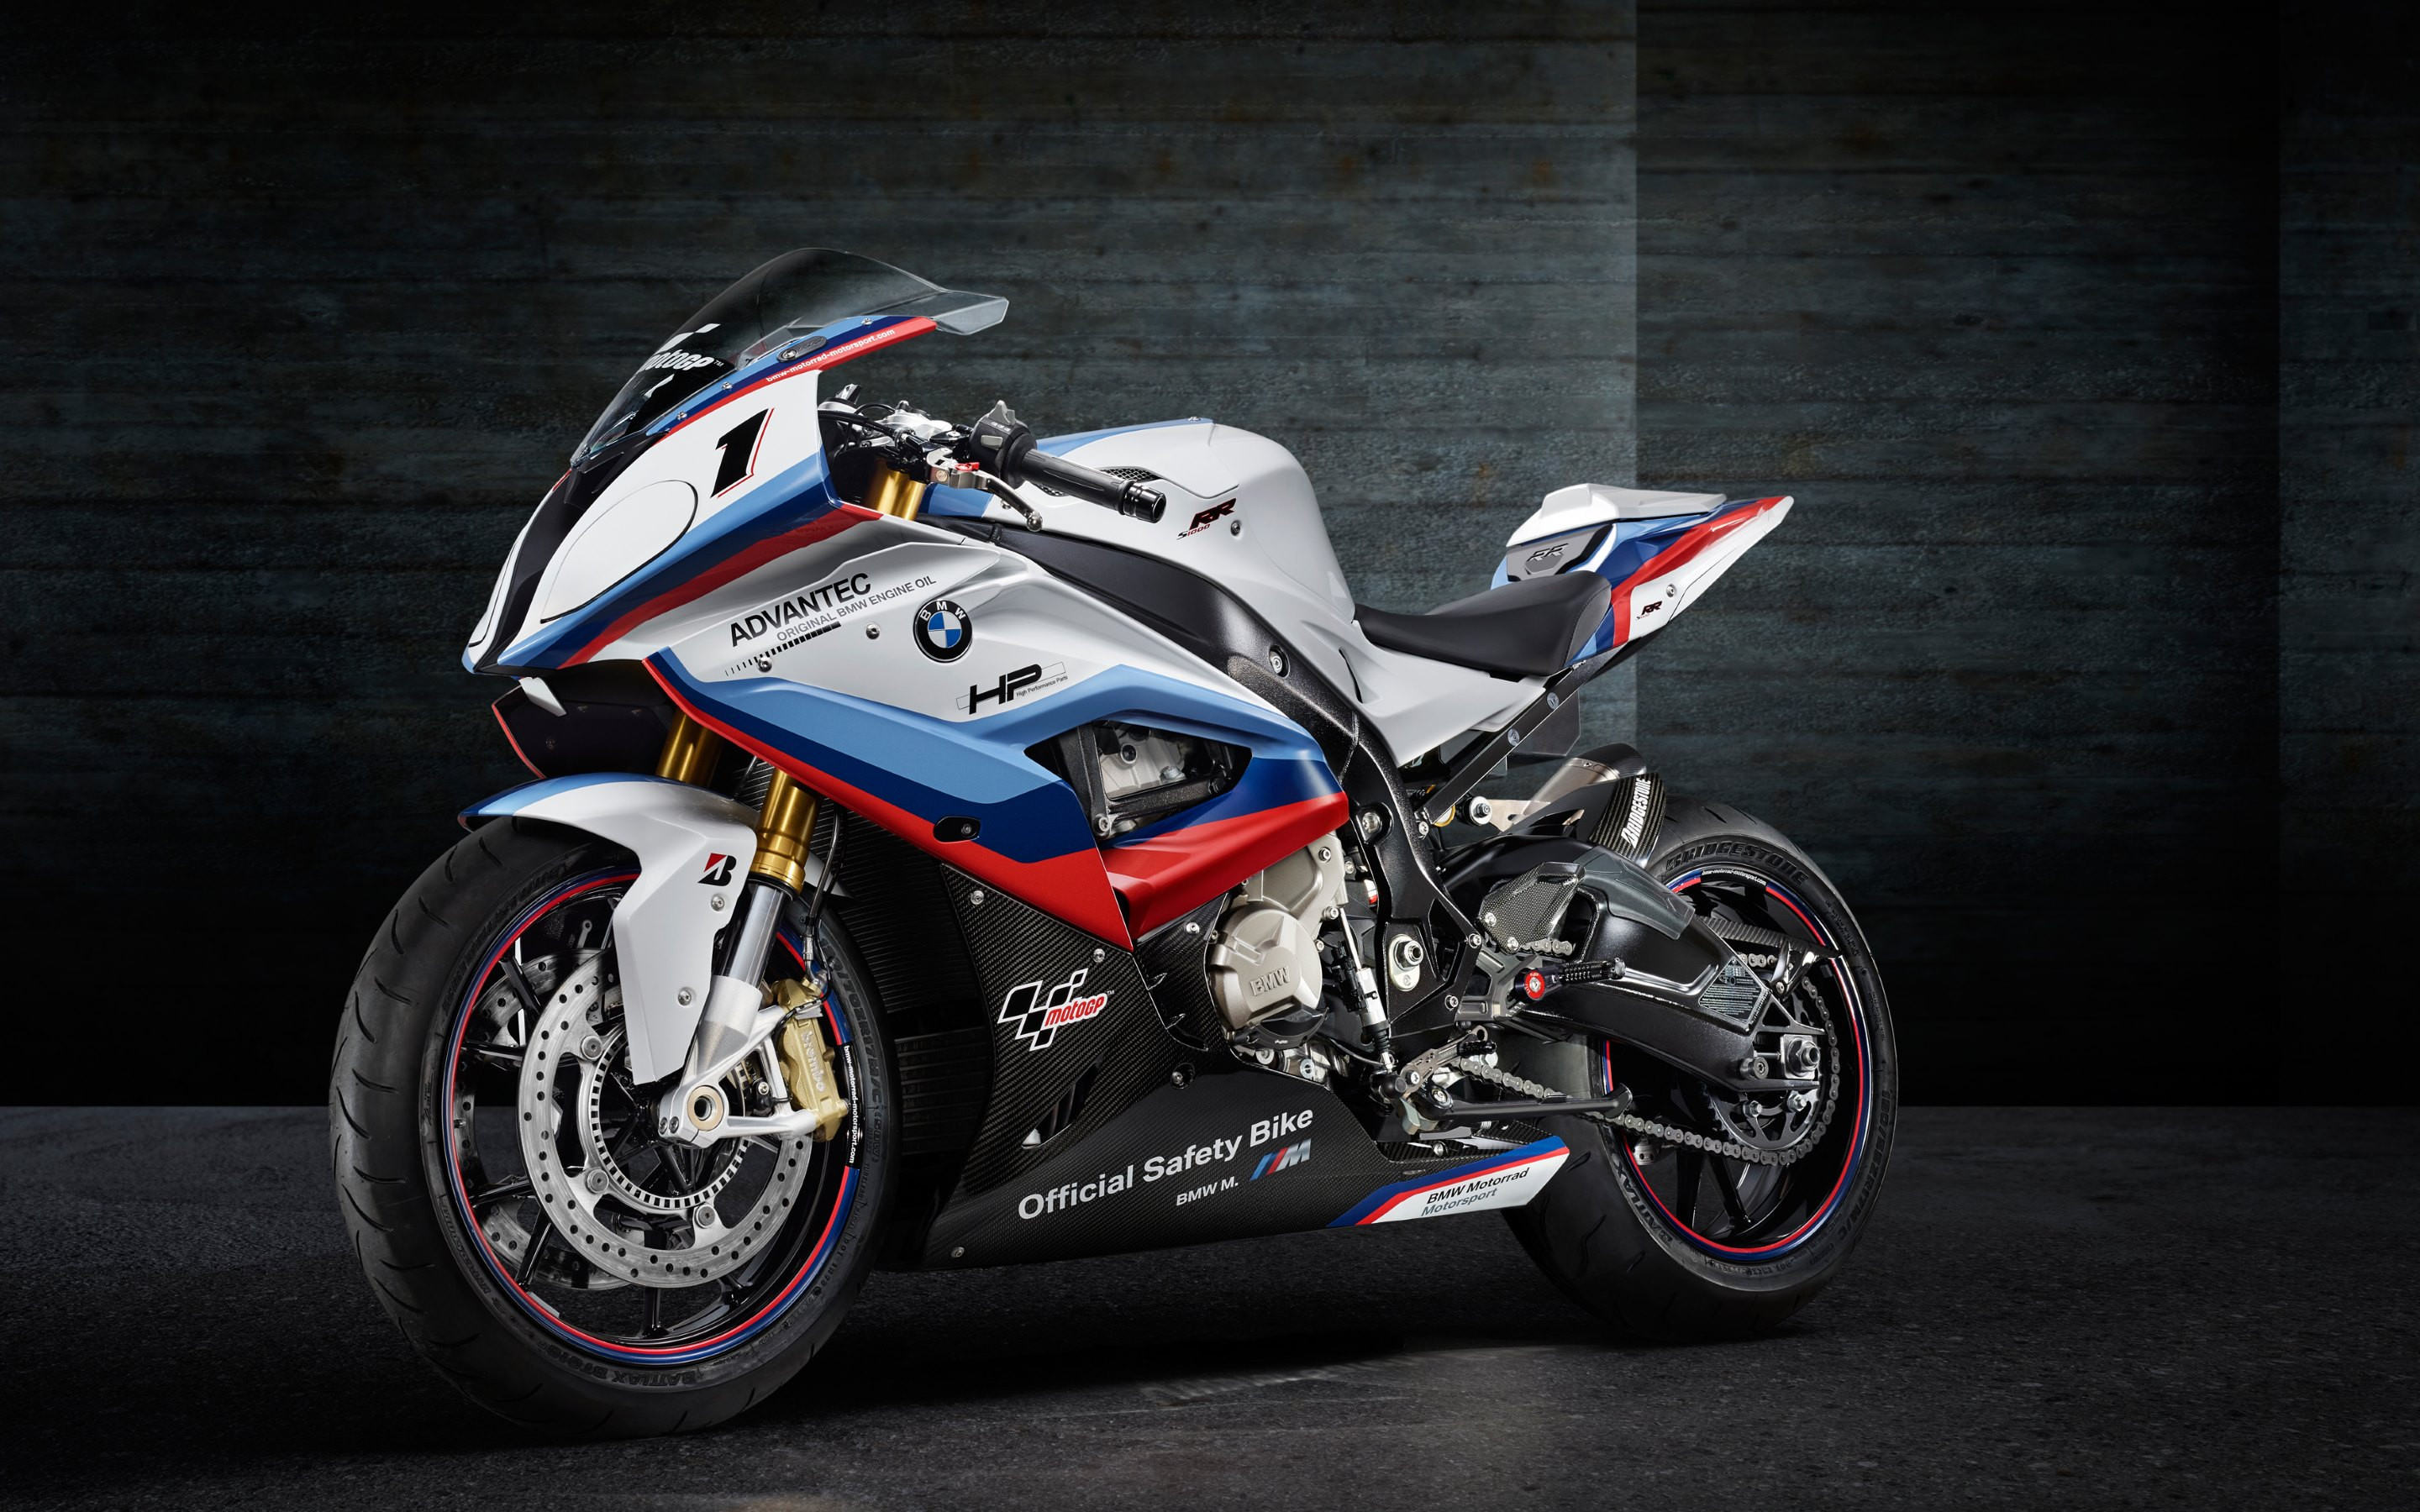 BMW S1000RR MotoGP Safety Motorcycle | 2880x1800 wallpaper